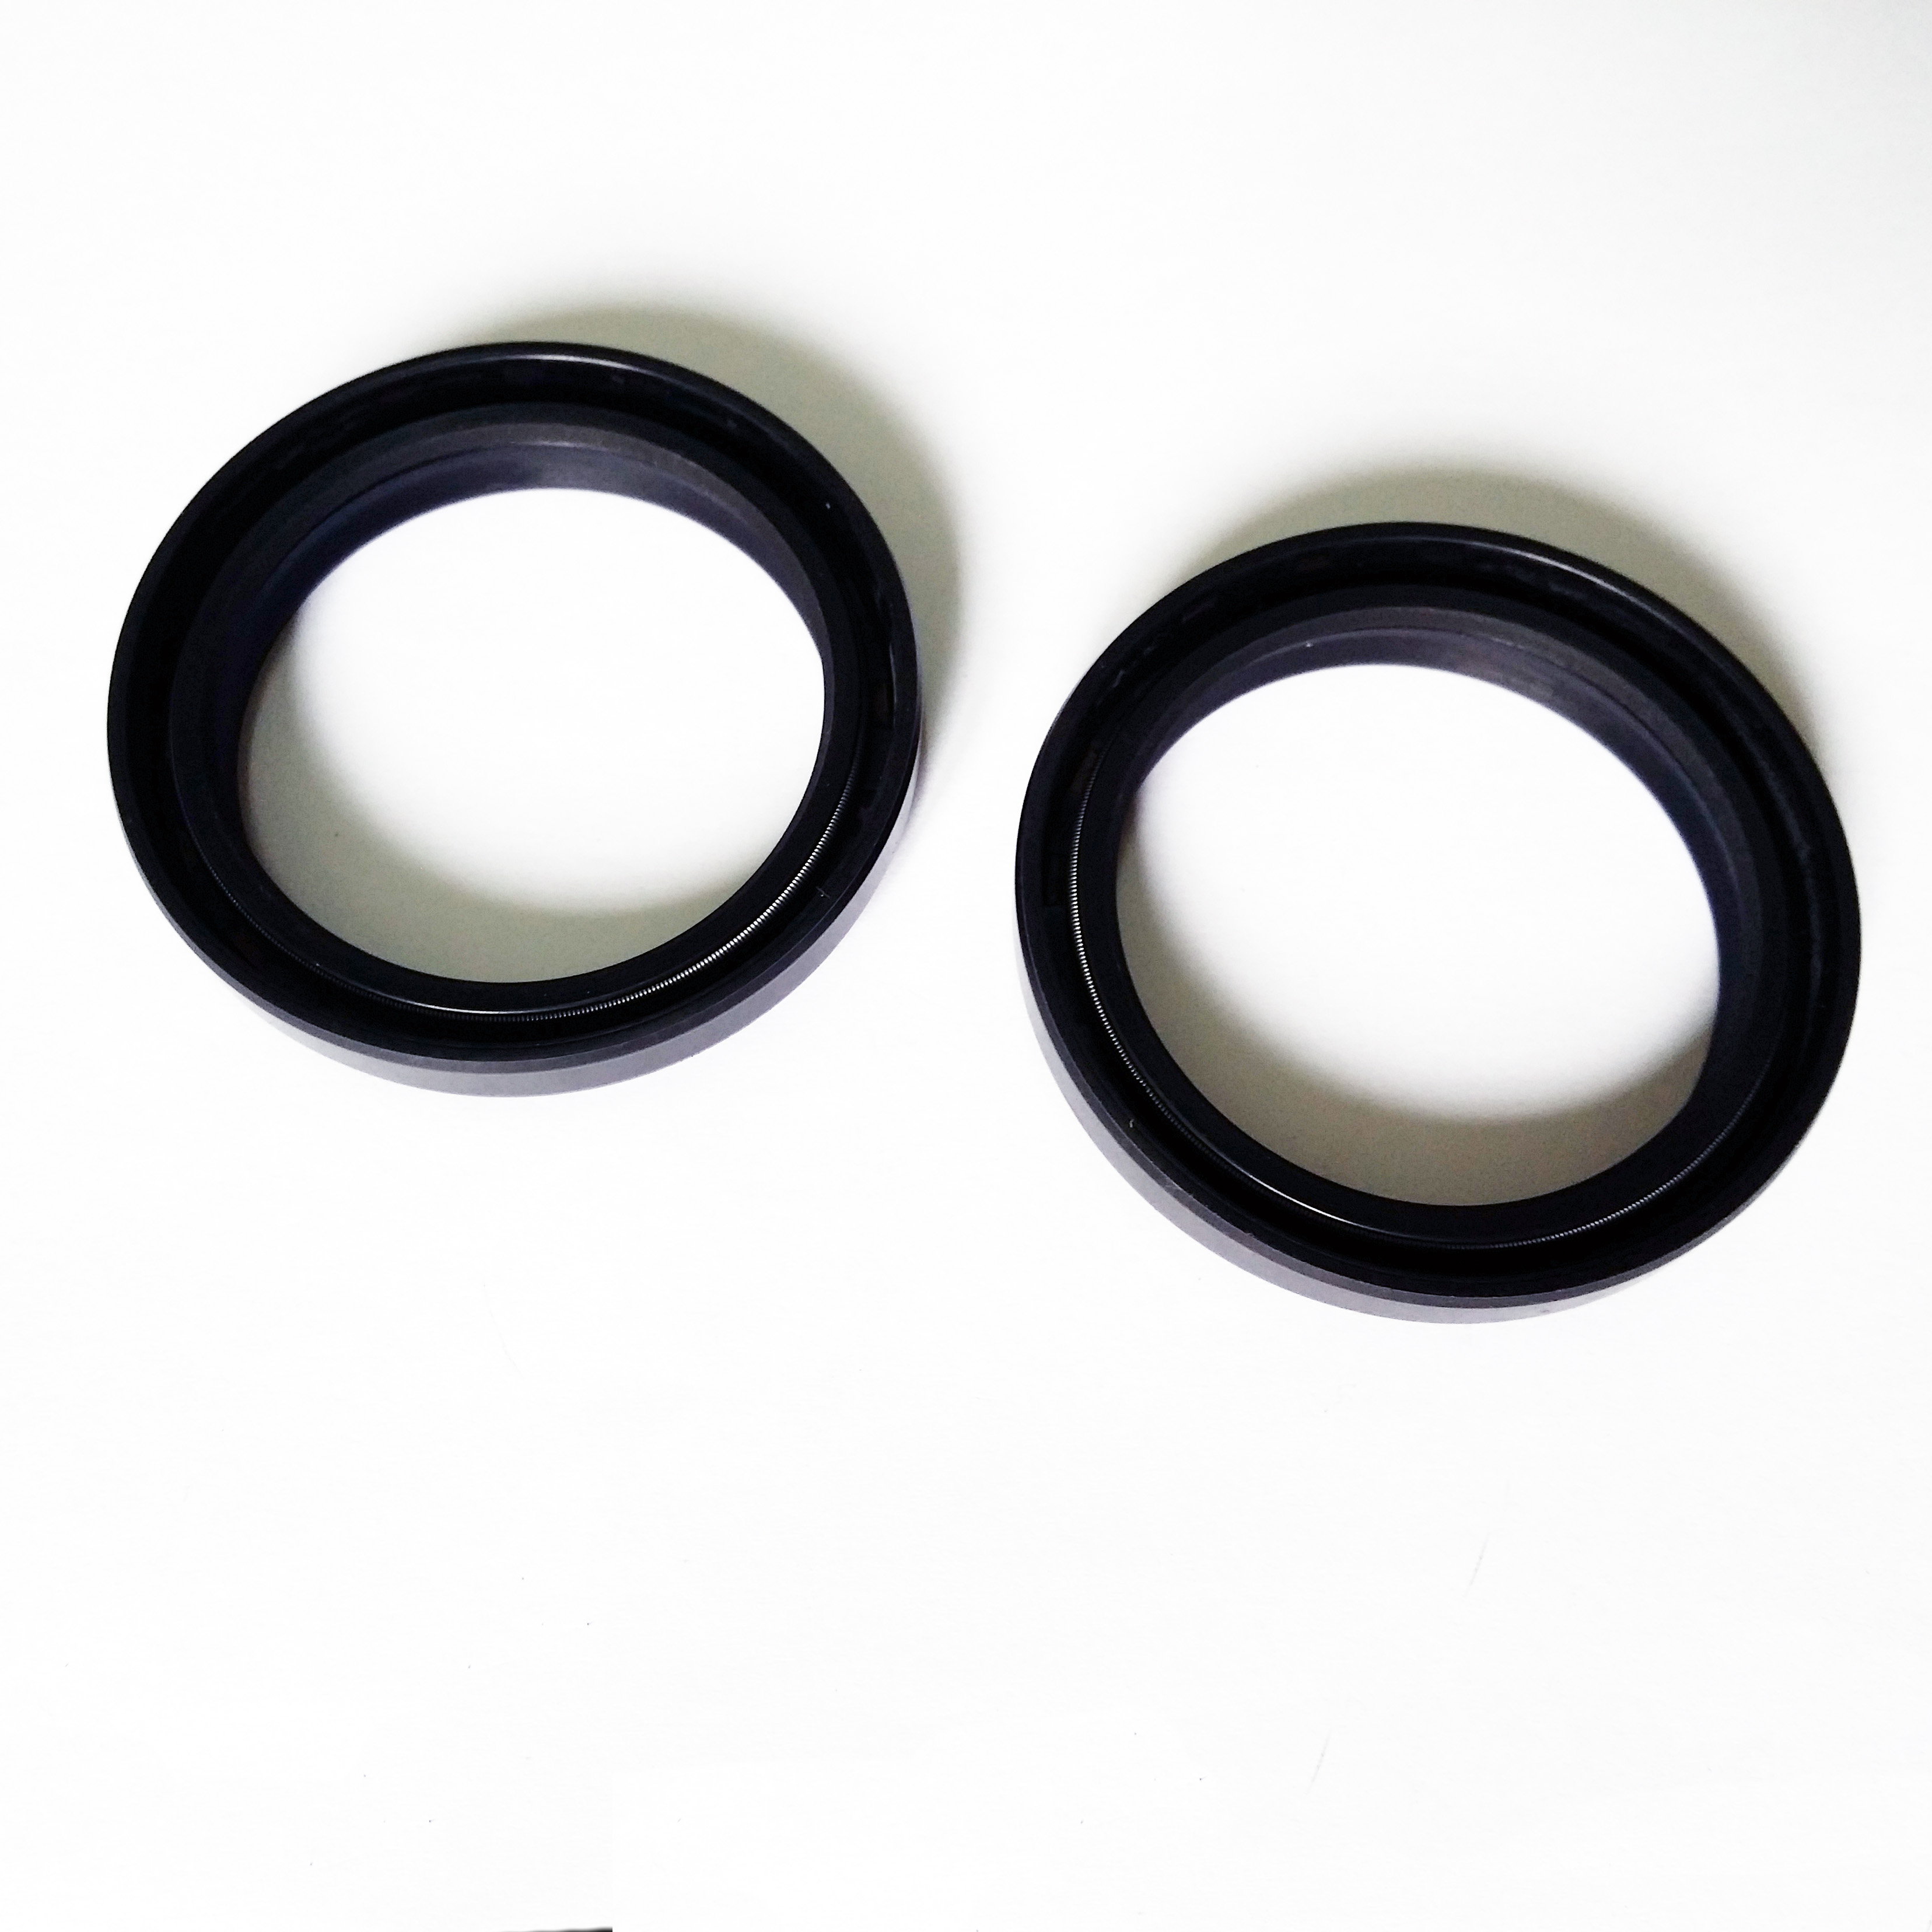 K-Tech Honda CRF450X 2005-2016 NOK Front Fork Oil Seals 47x58x10mm